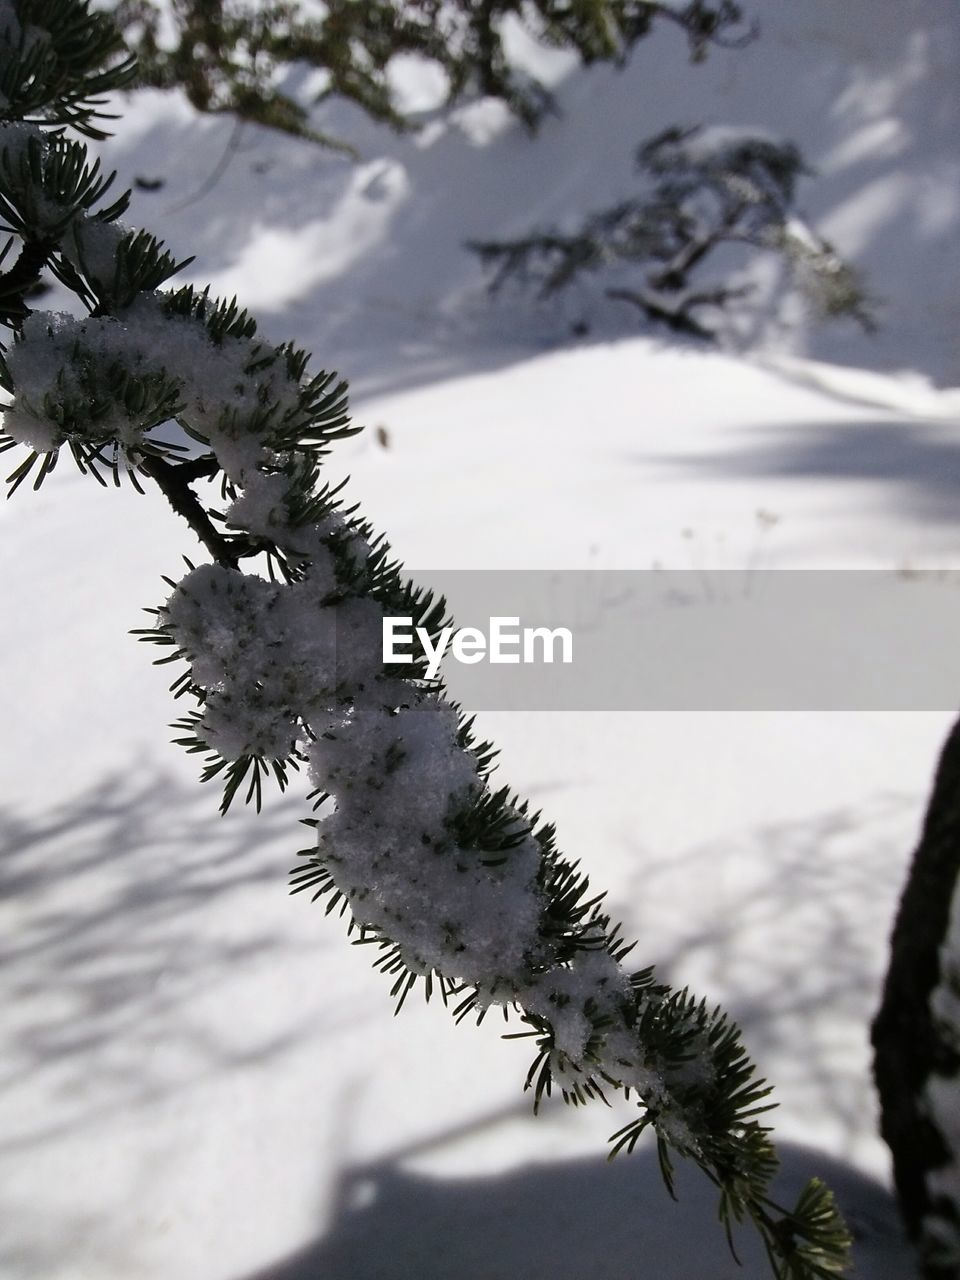 nature, winter, day, tree, cold temperature, outdoors, beauty in nature, focus on foreground, no people, branch, snow, tranquility, water, sky, close-up, scenics